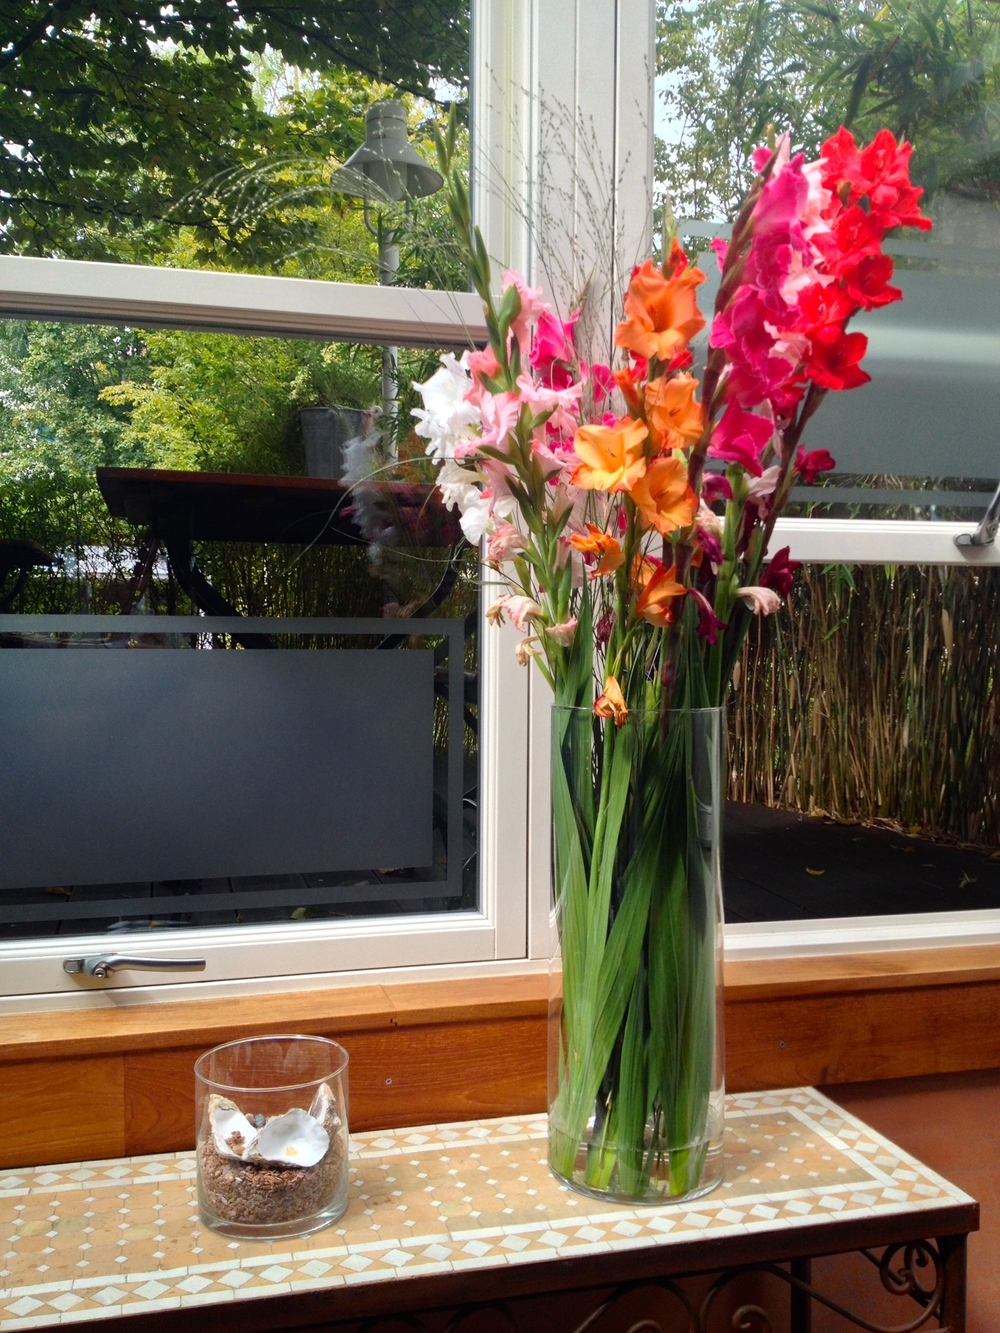 Lovely flowers on the back patio where we were seated